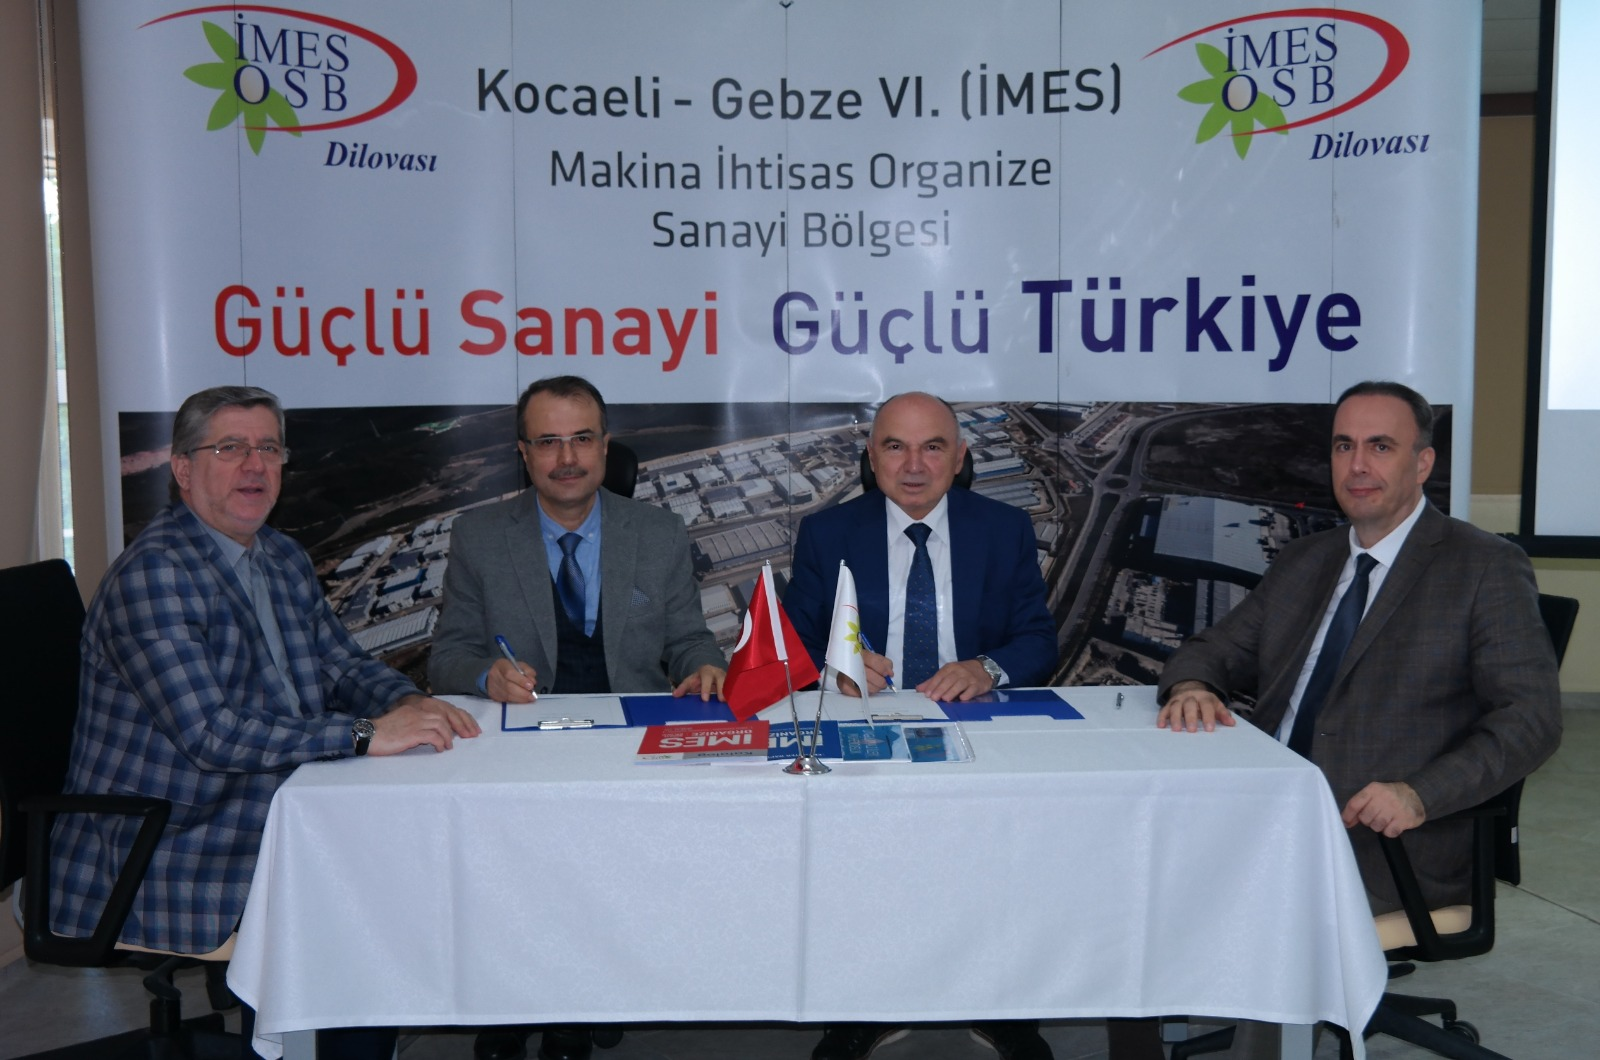 IMES OIZ and Marmara University Cooperation